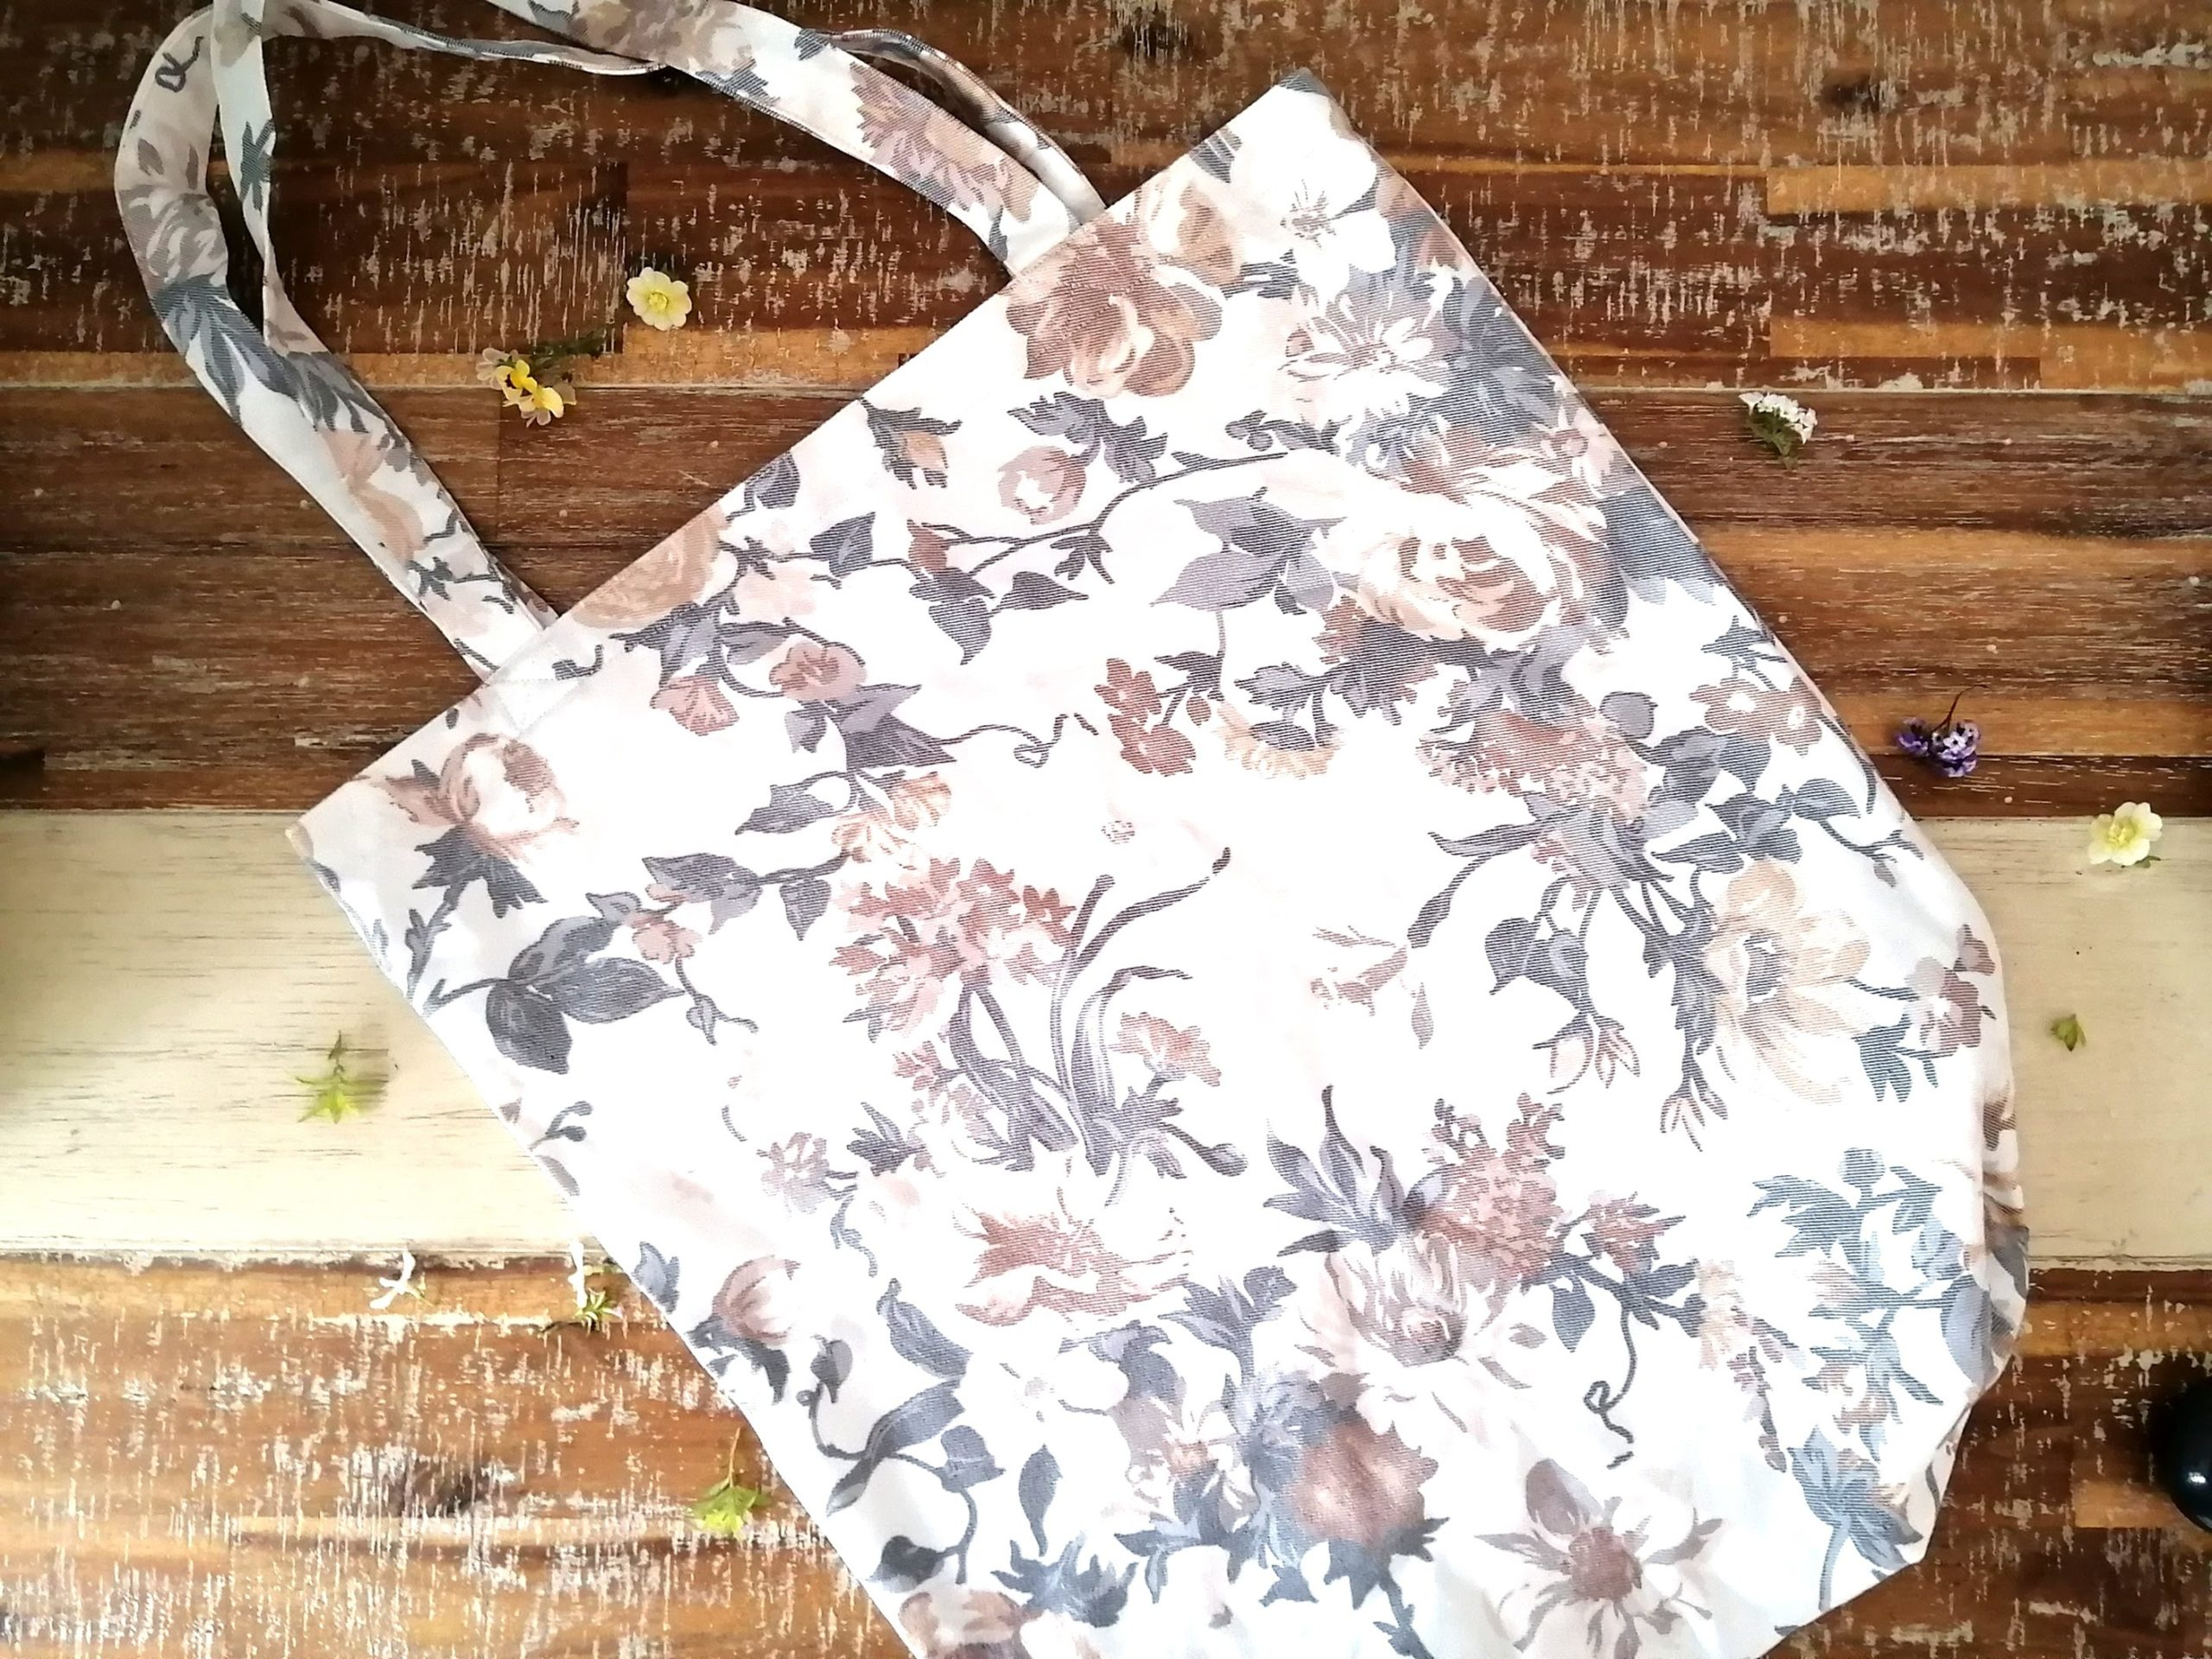 Boho Bag for sale on Just Grace, NPC, Langa, Cape Town   online shop to support local non-profit organisation in Cape Town